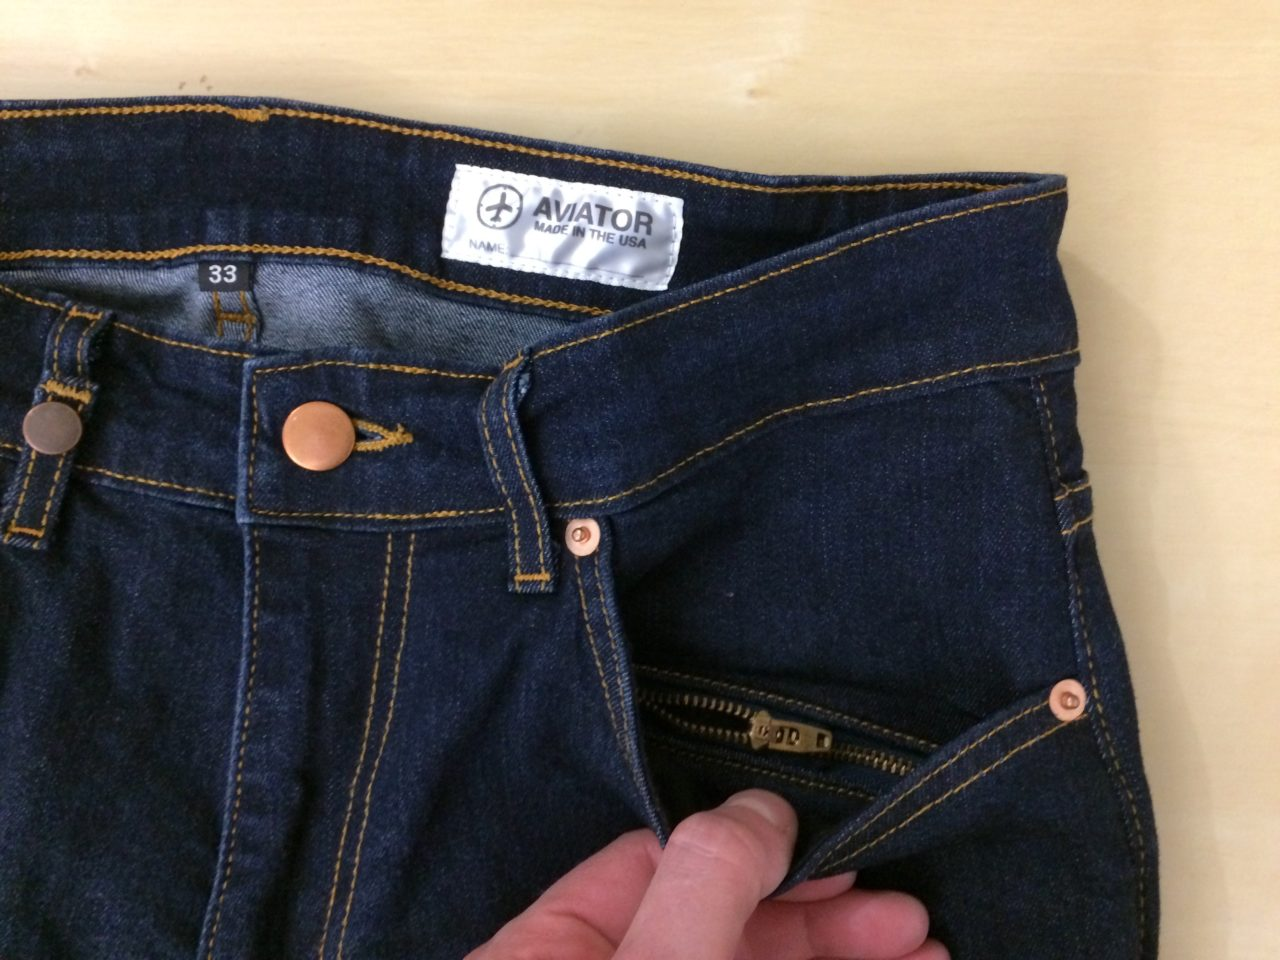 Aviator USA Jeans hidden front pocket